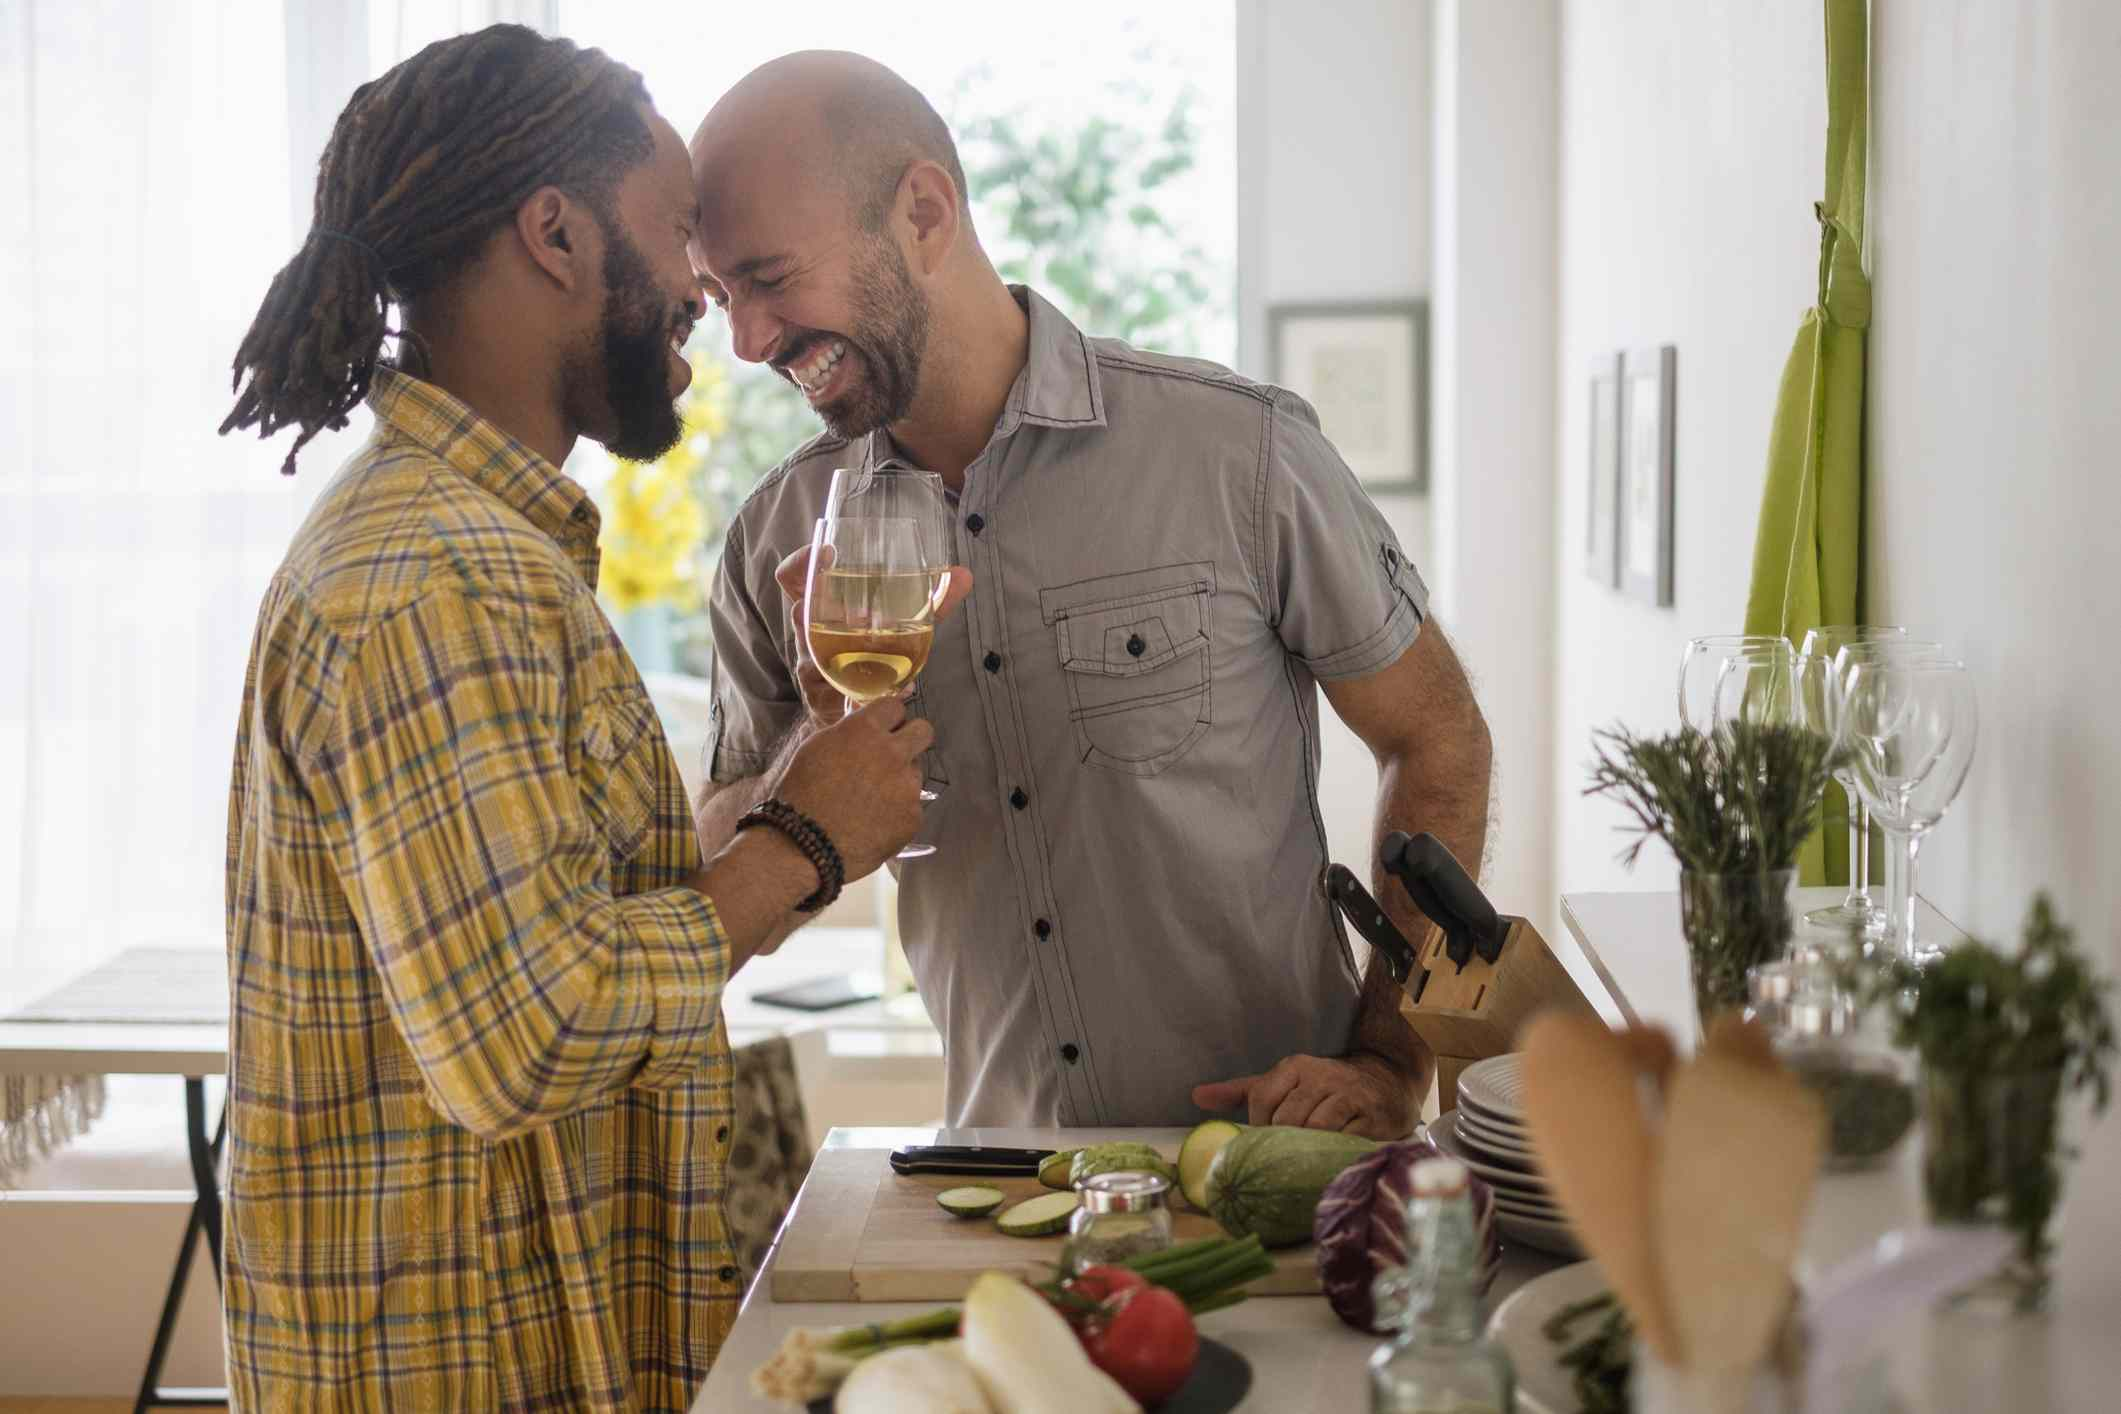 Two men in love having a glass of wine together